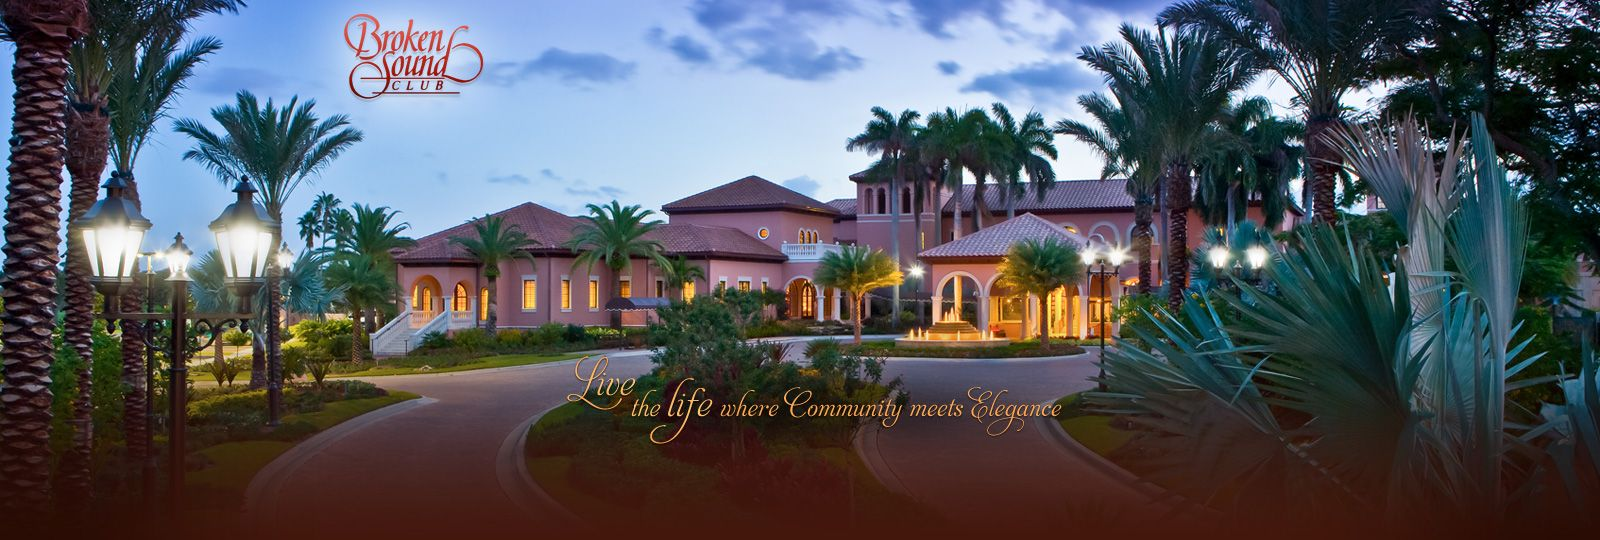 25+ Boca raton communities without golf ideas in 2021